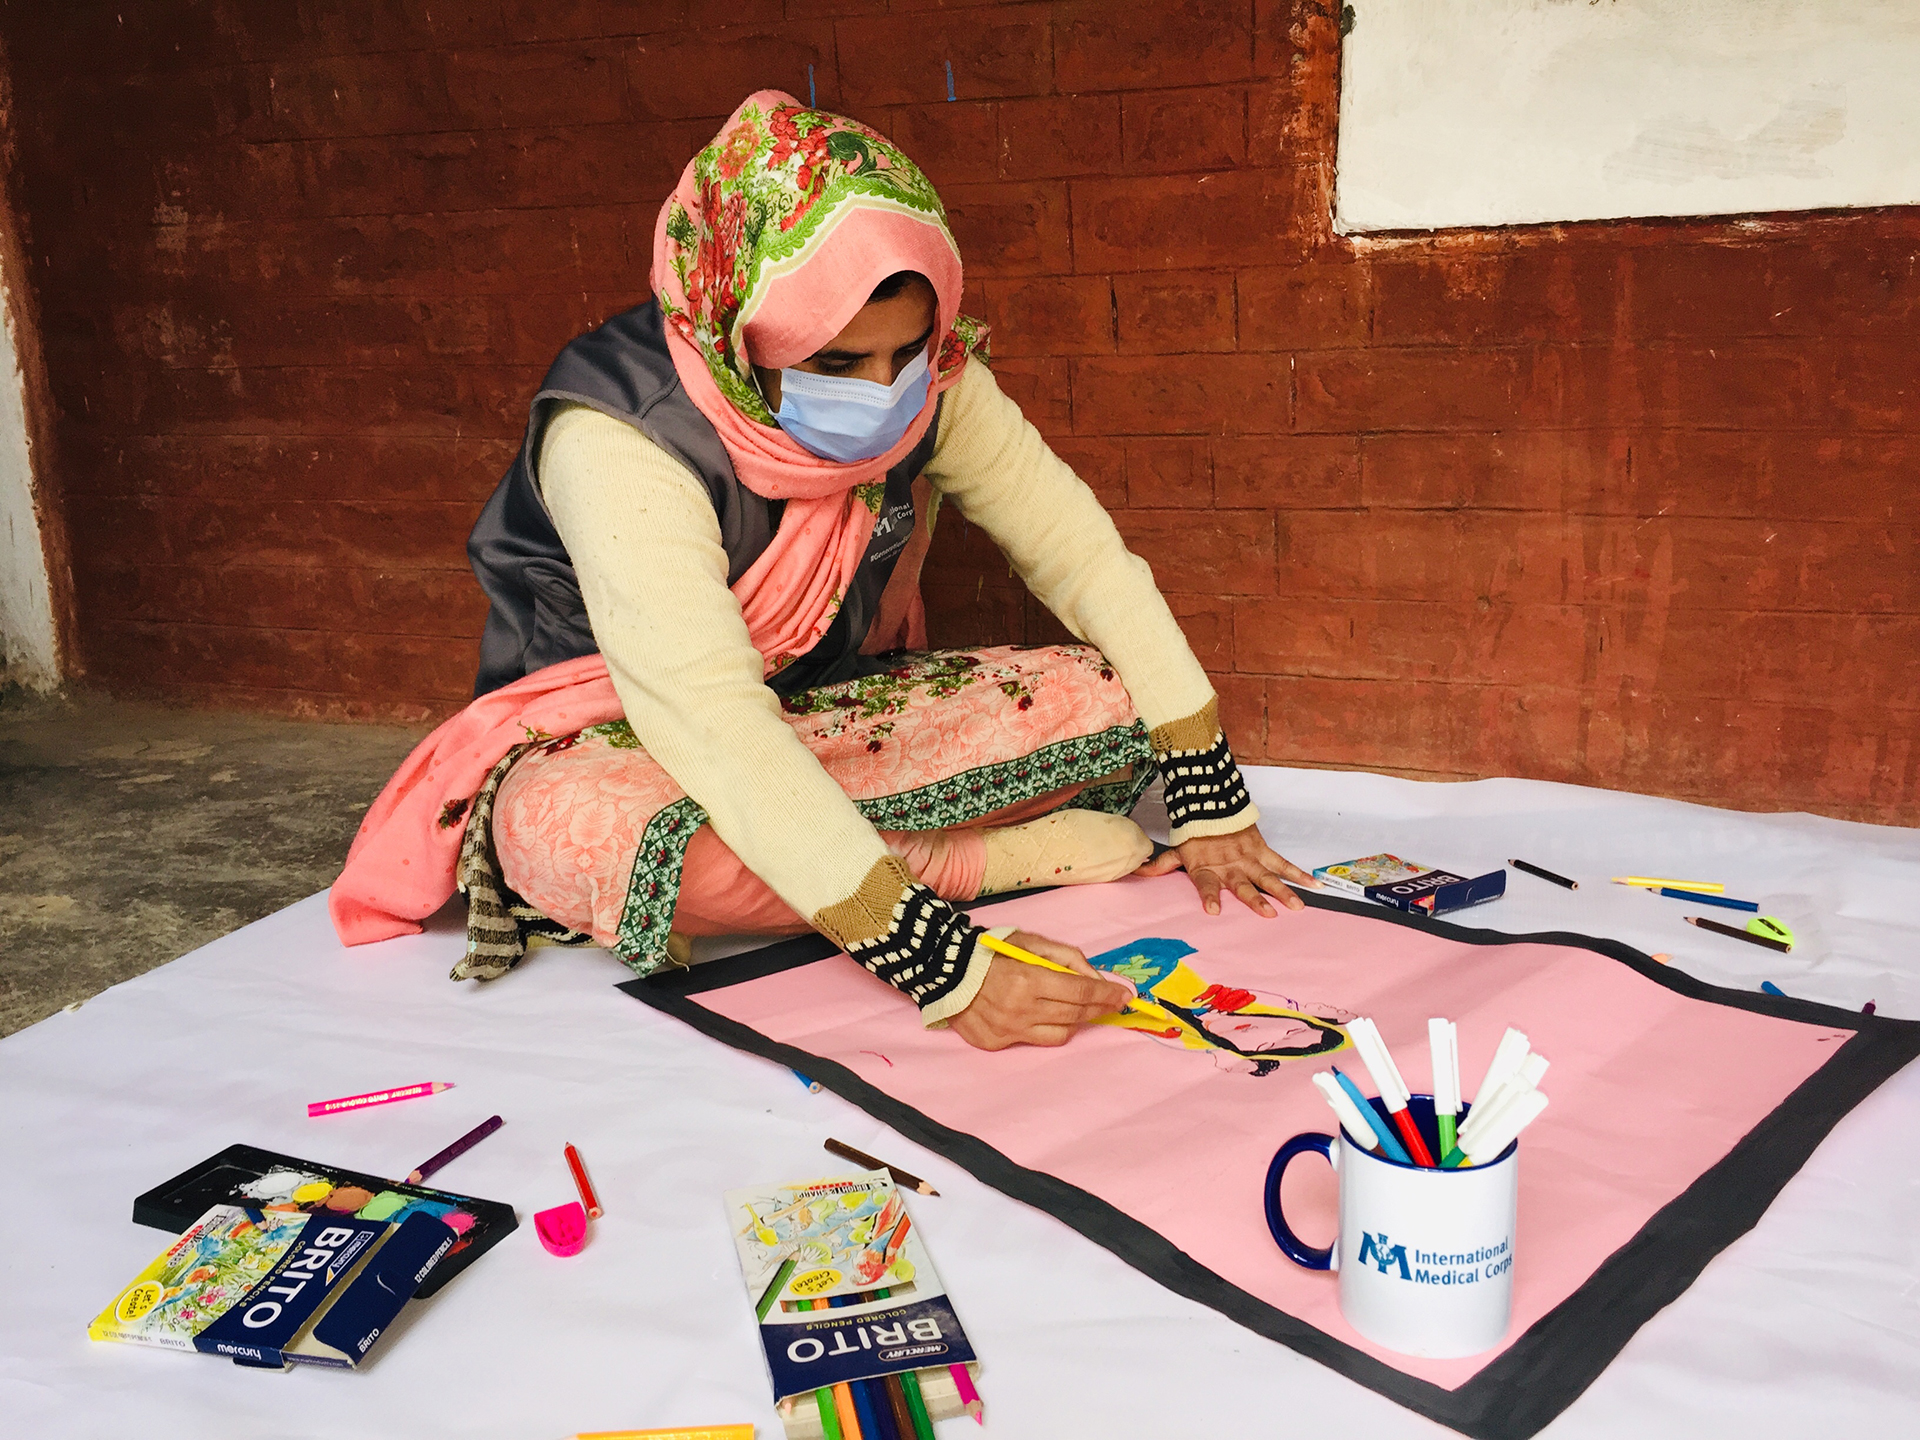 A community member in Khyber Pakhtunkhwa province participates in an art activity during the 16 Days campaign.